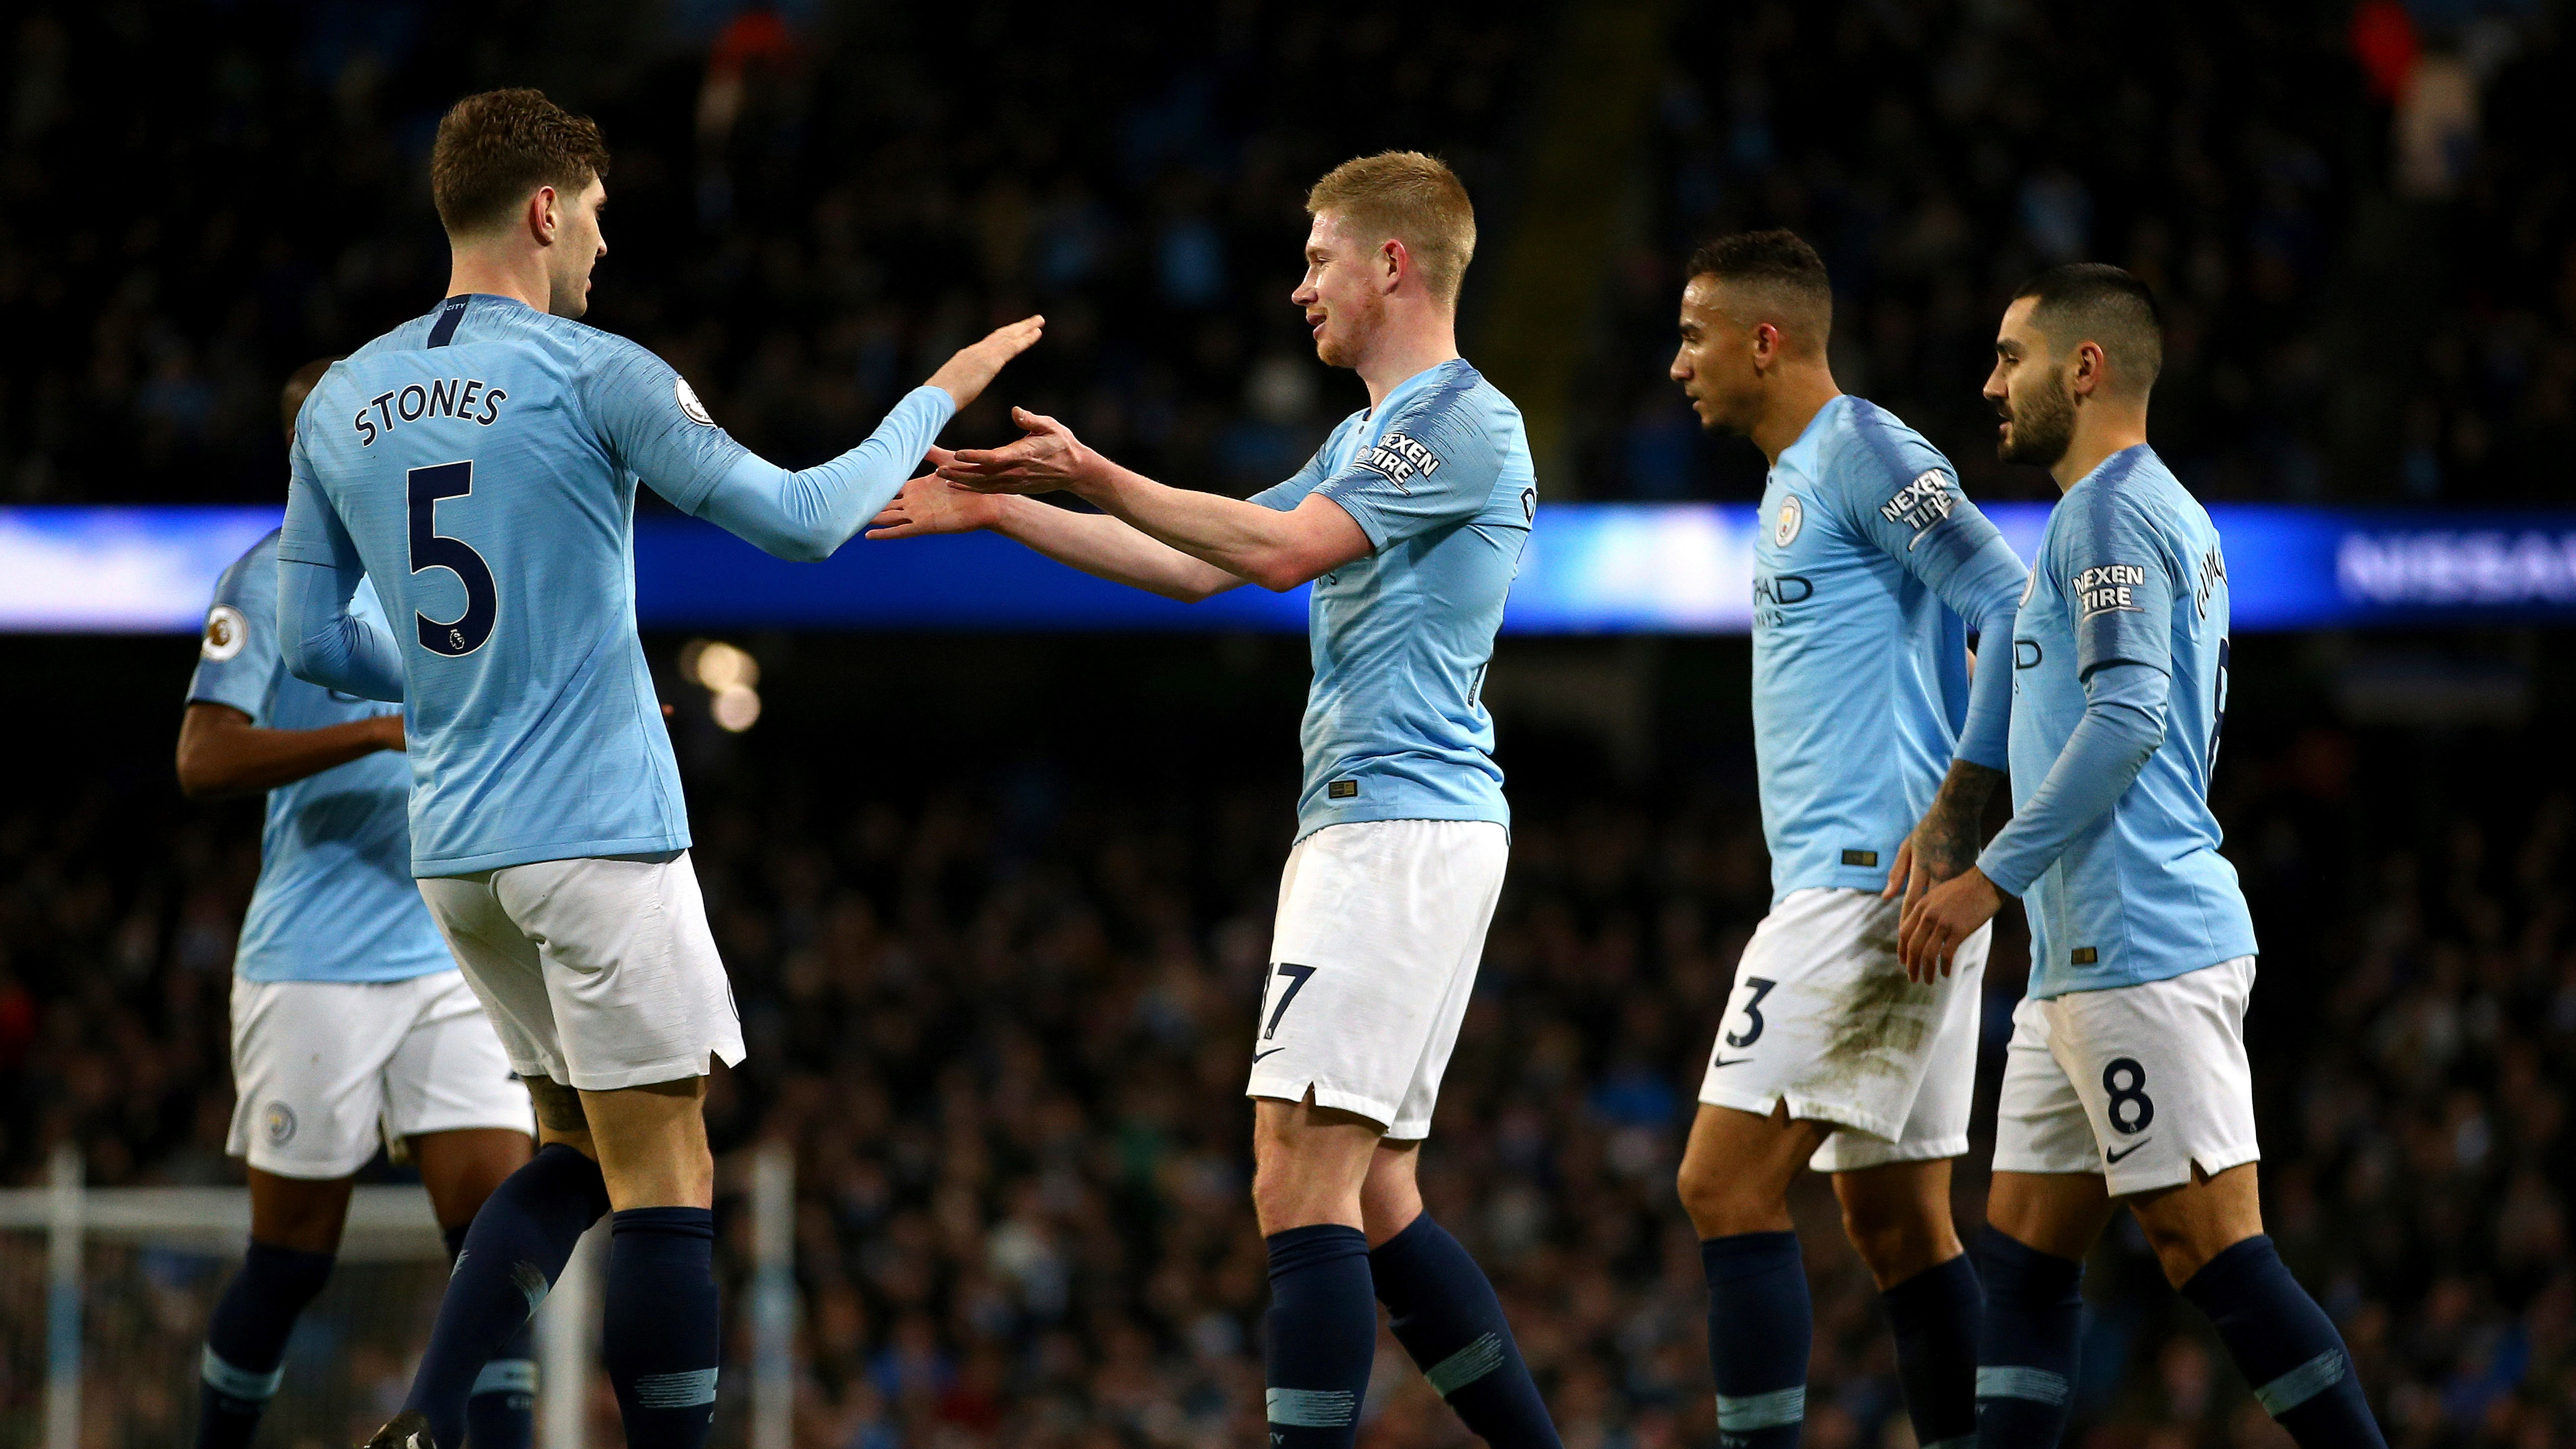 Manchester city arsenal betting preview illinois off track betting kentucky derby